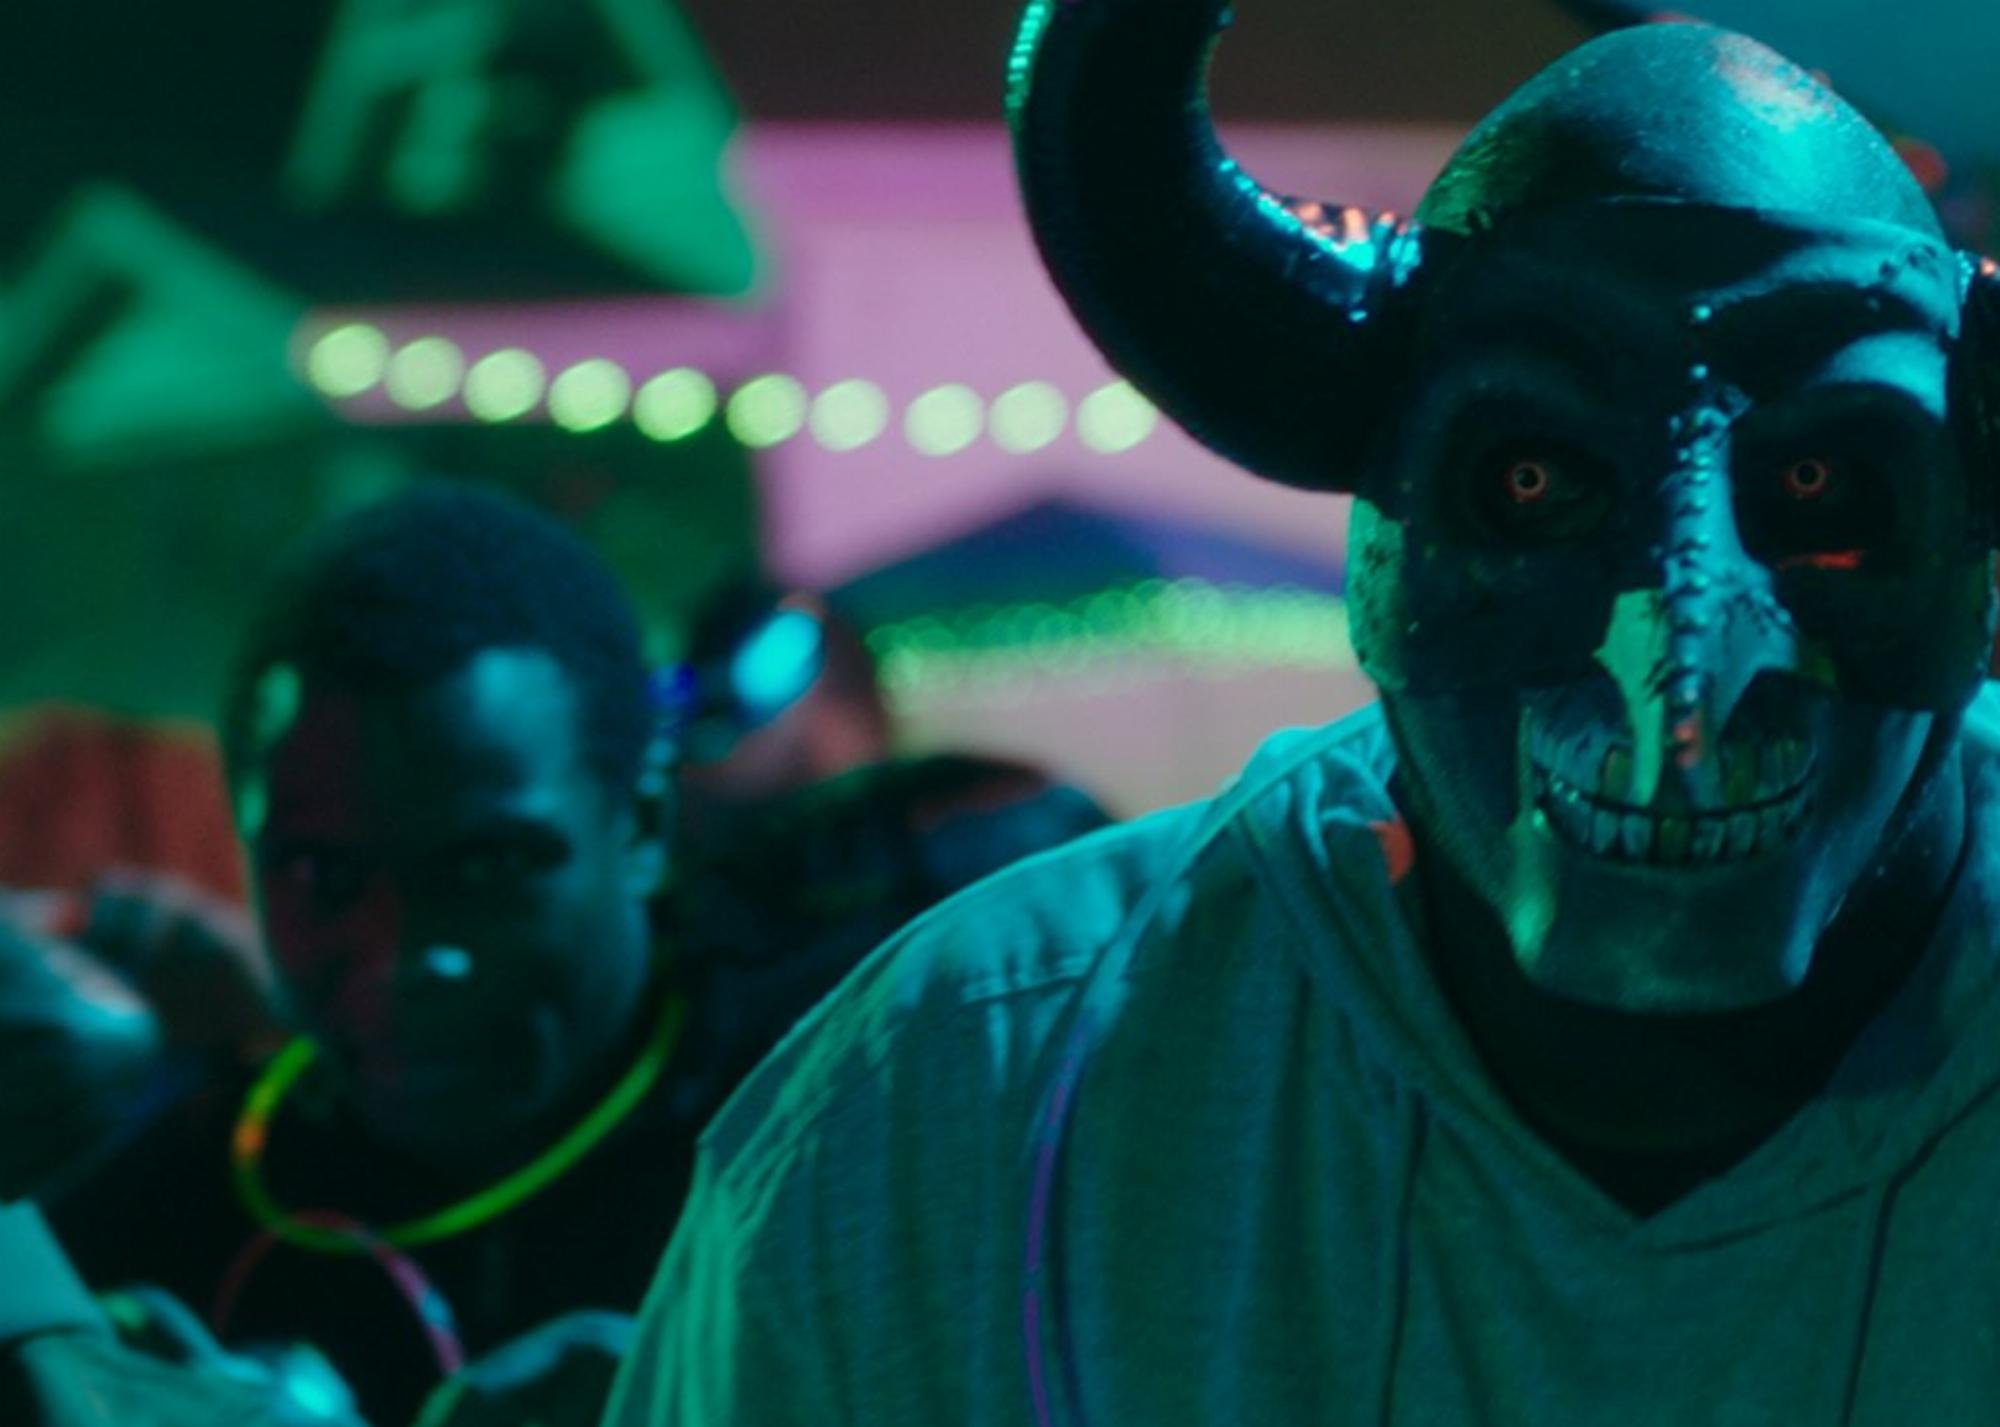 A scene from The First Purge